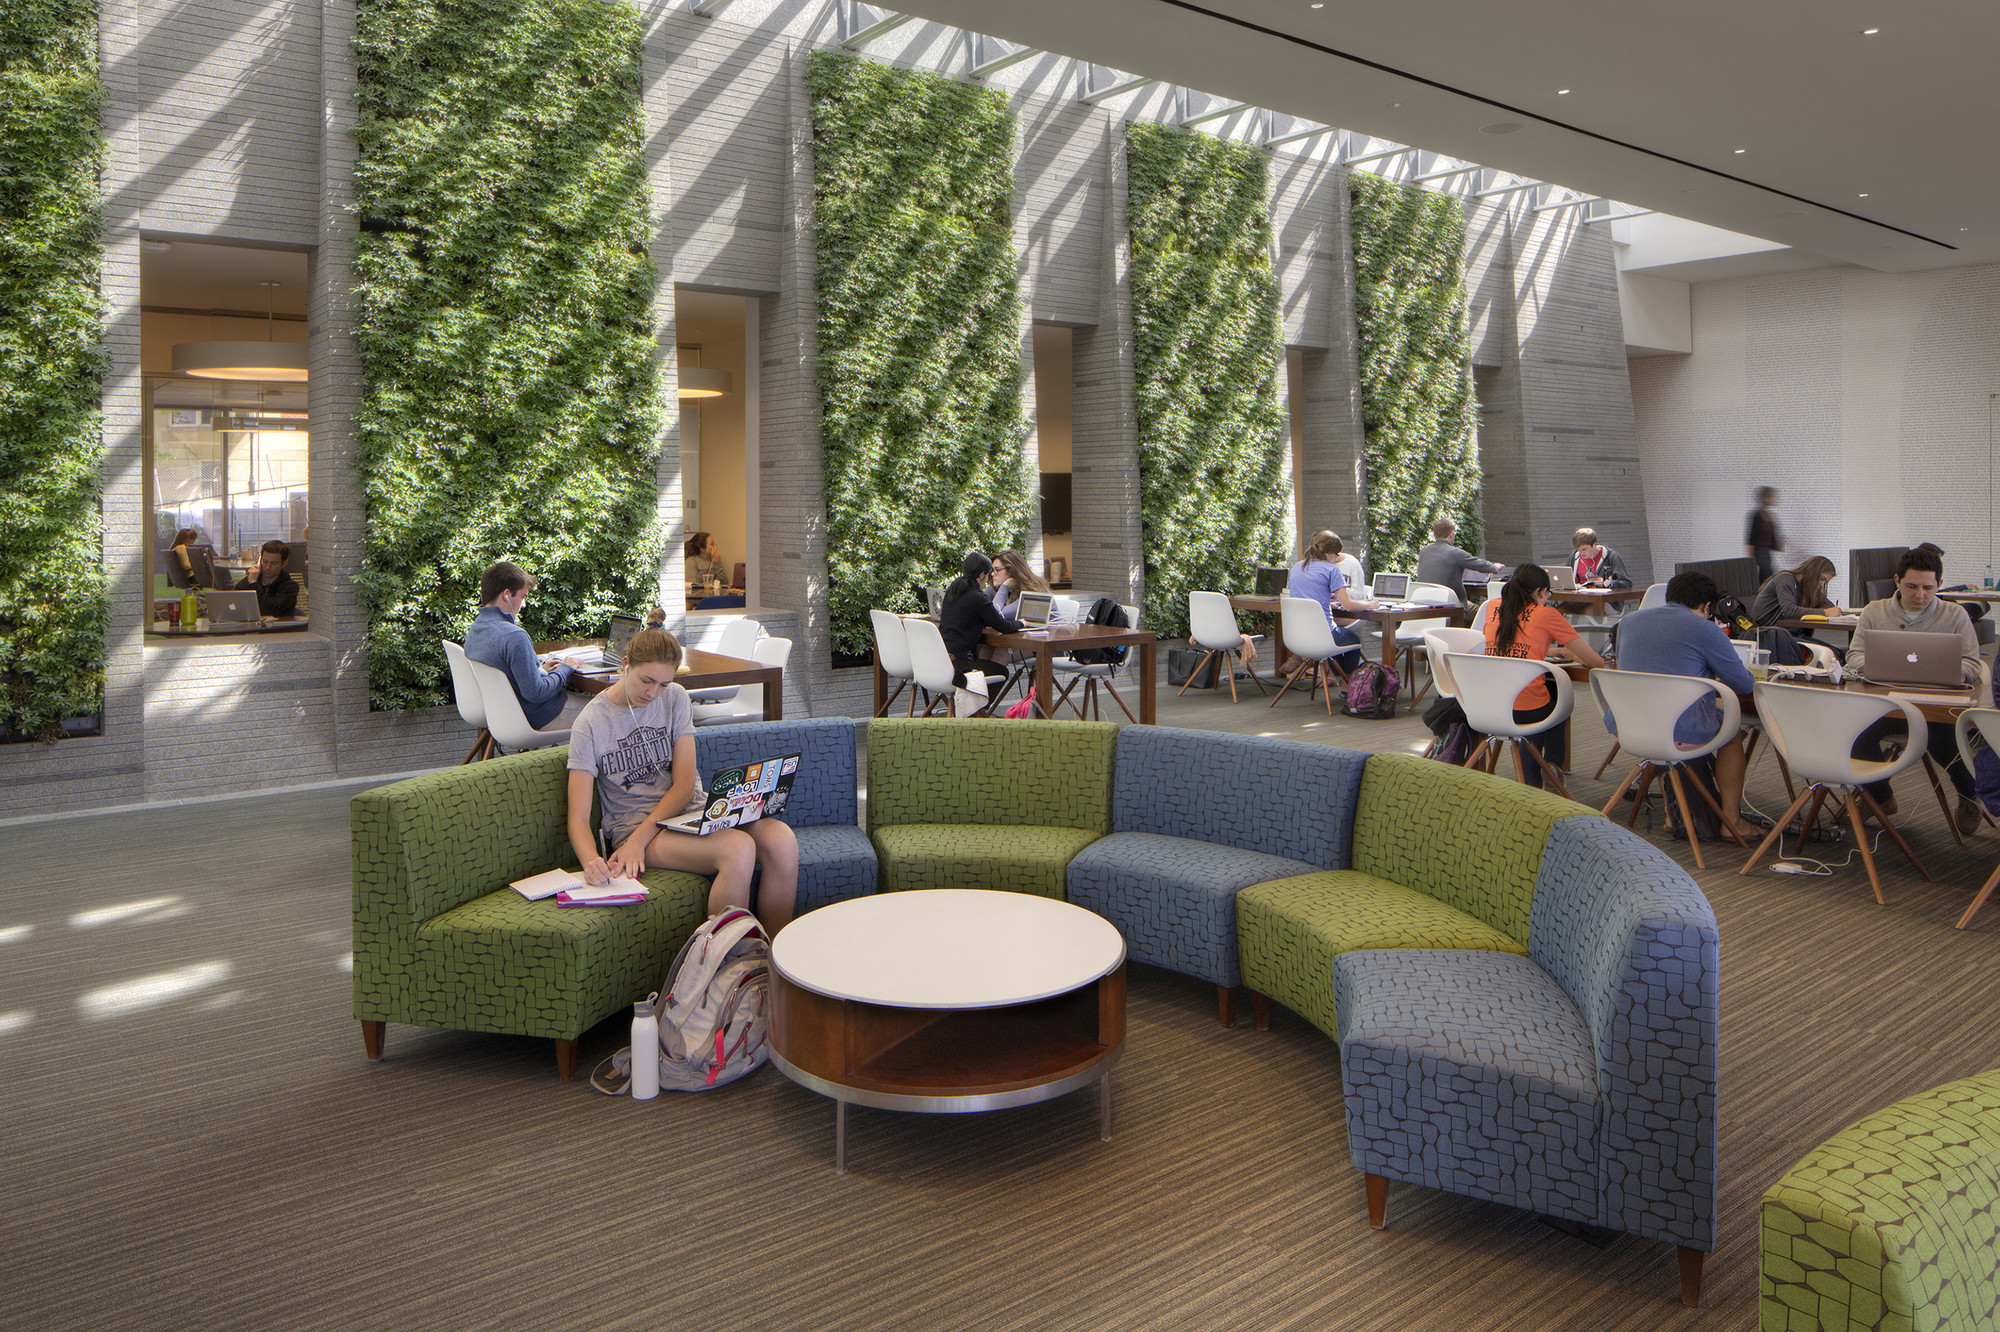 Gallery Of Student Center At Georgetown University Ikon